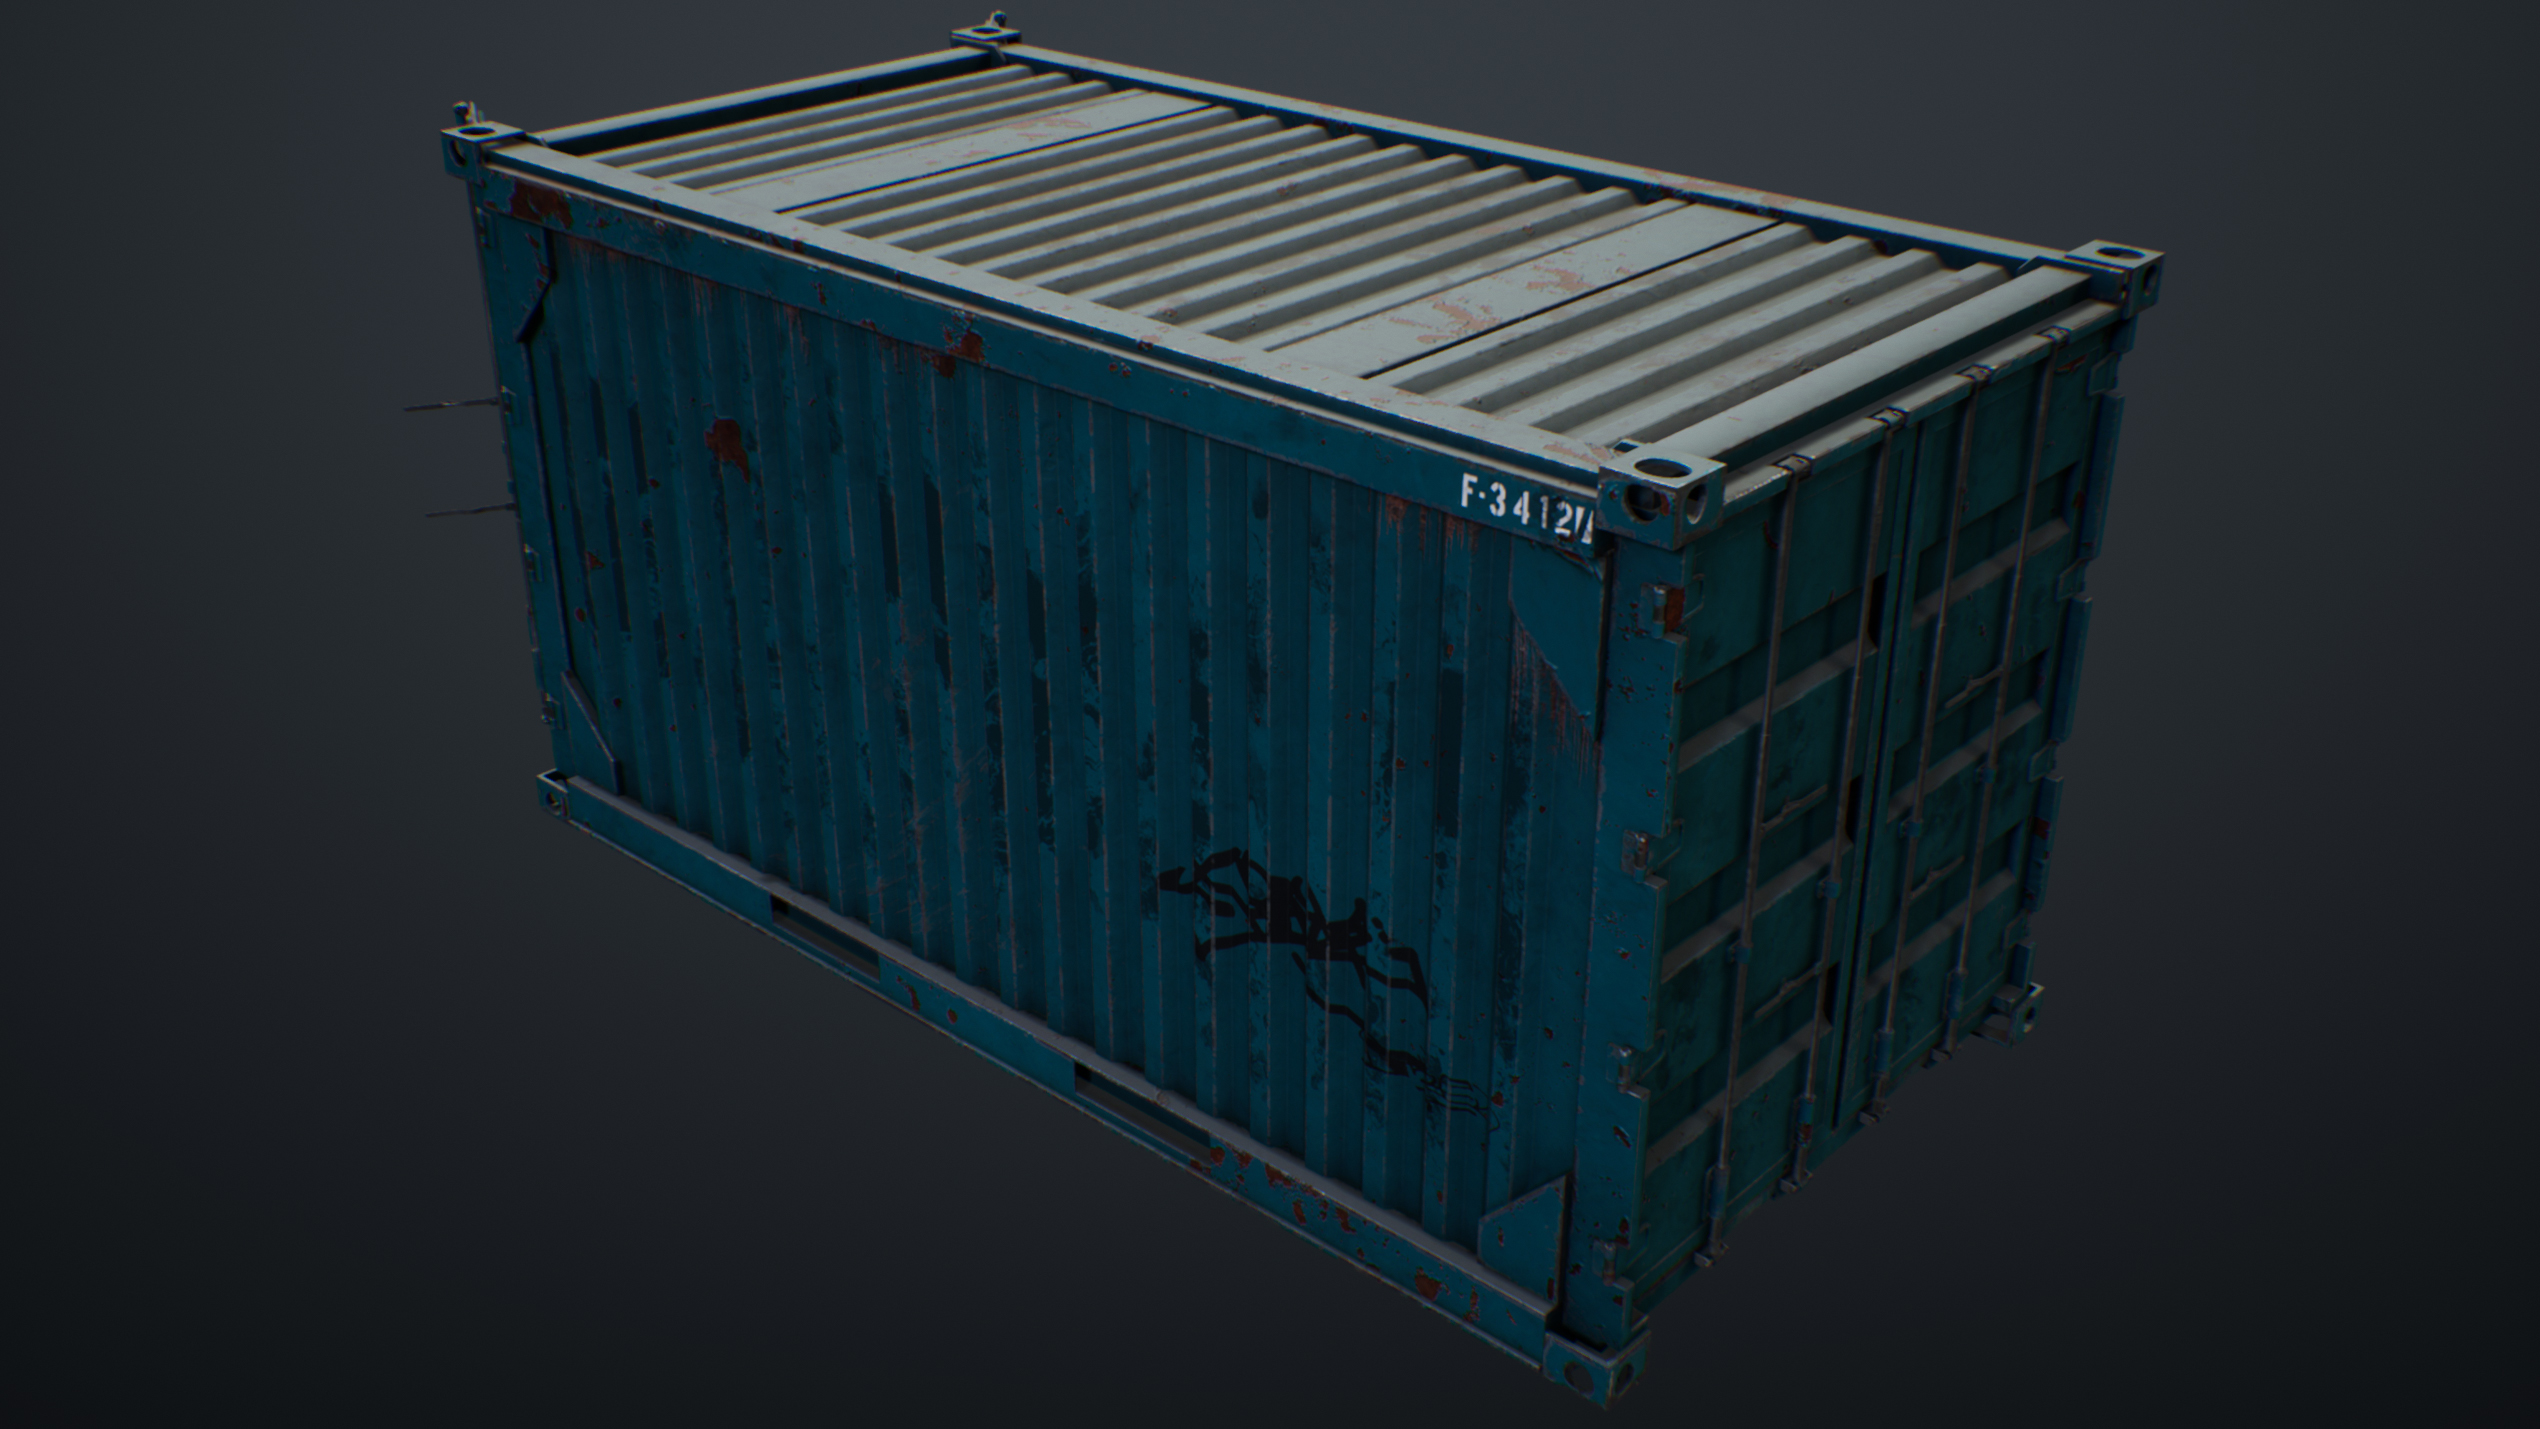 UE4 screenshot of the container back right view